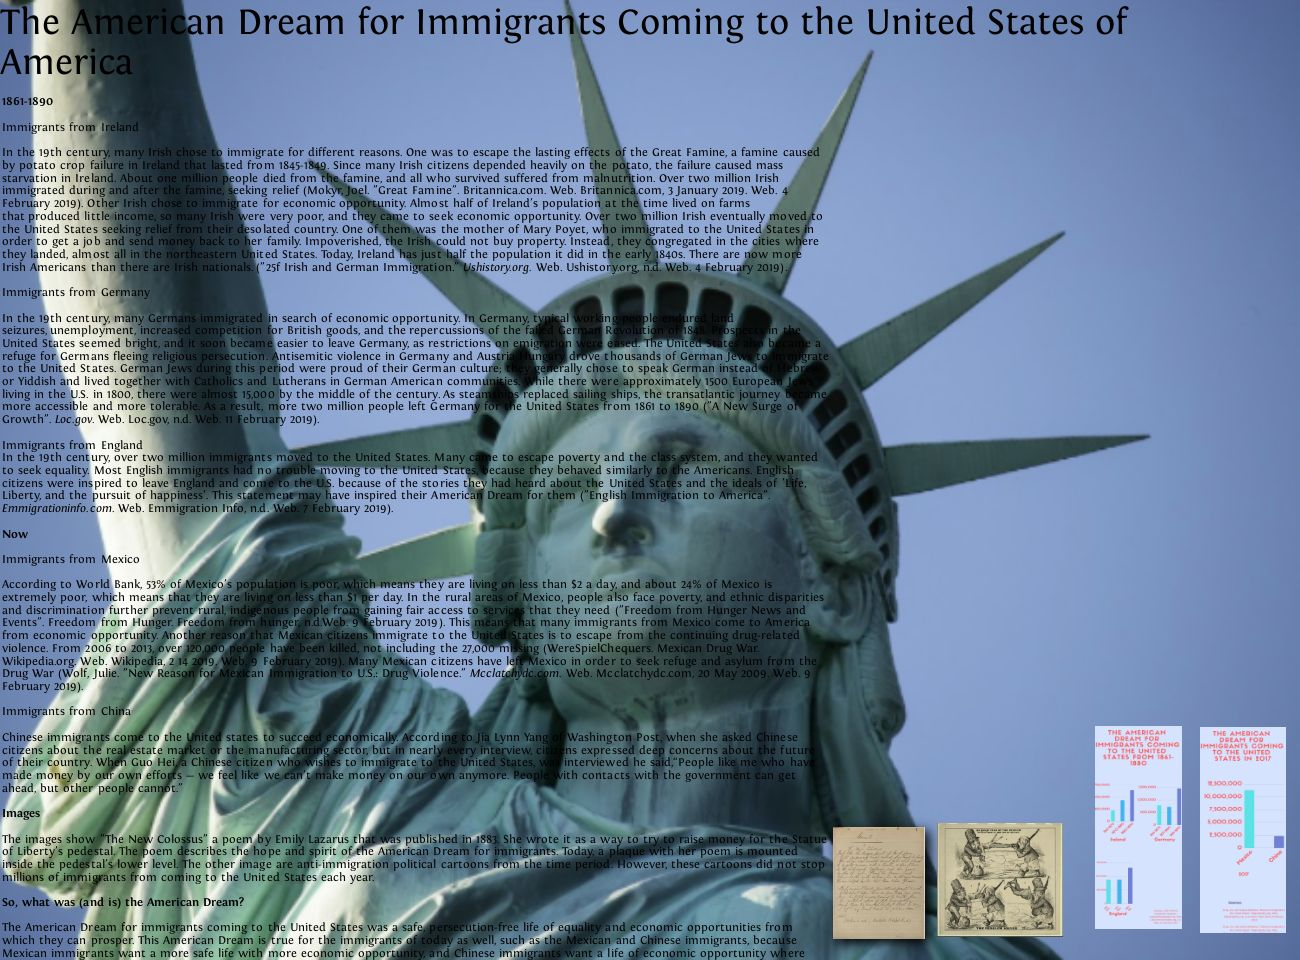 The American Dream for Immigrants Coming to the United States (A.P.R.)